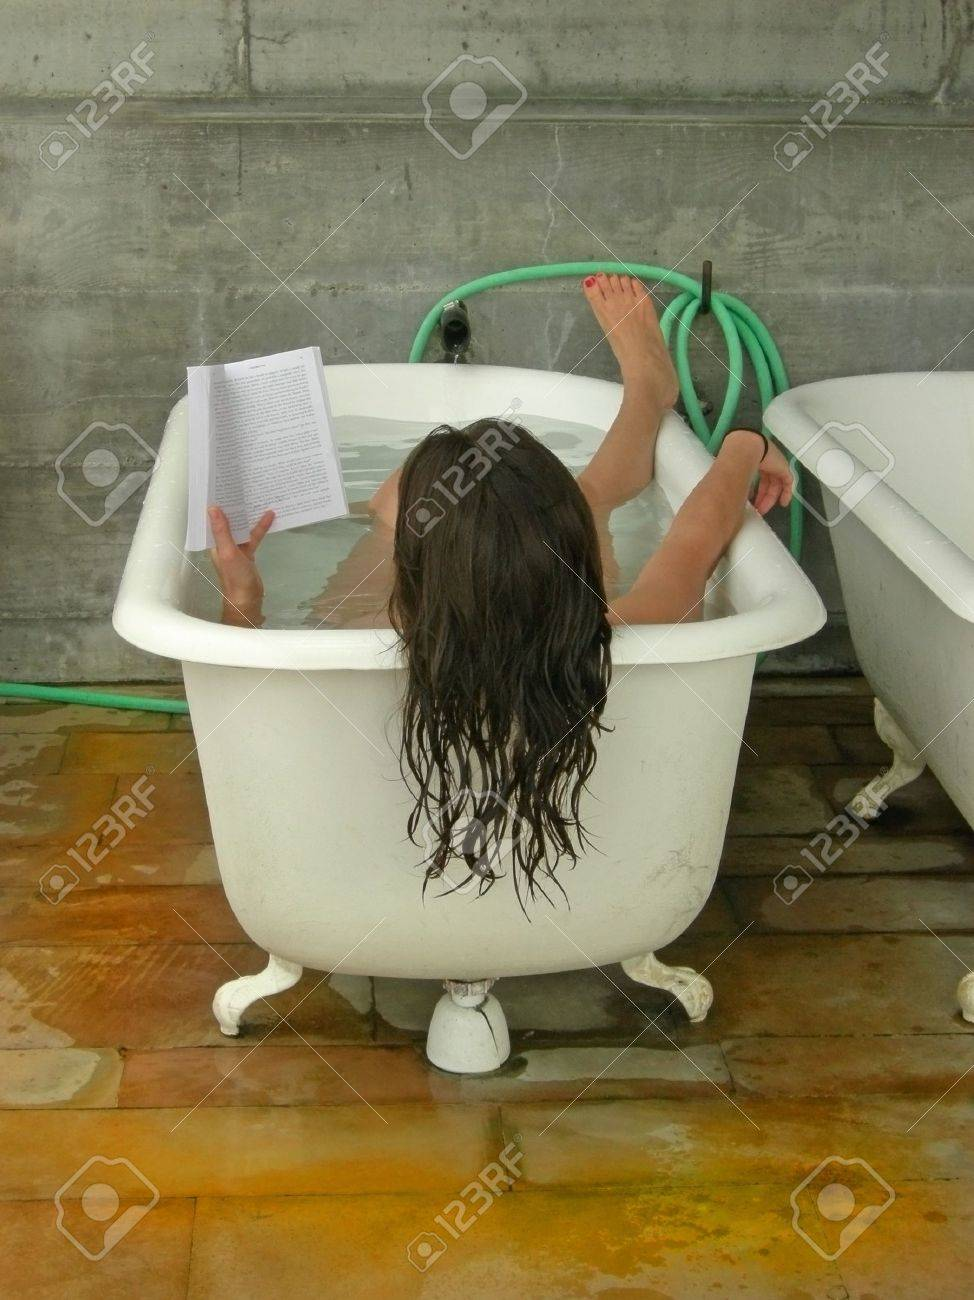 A woman soaks in a tub while reading. Stock Photo - 704702